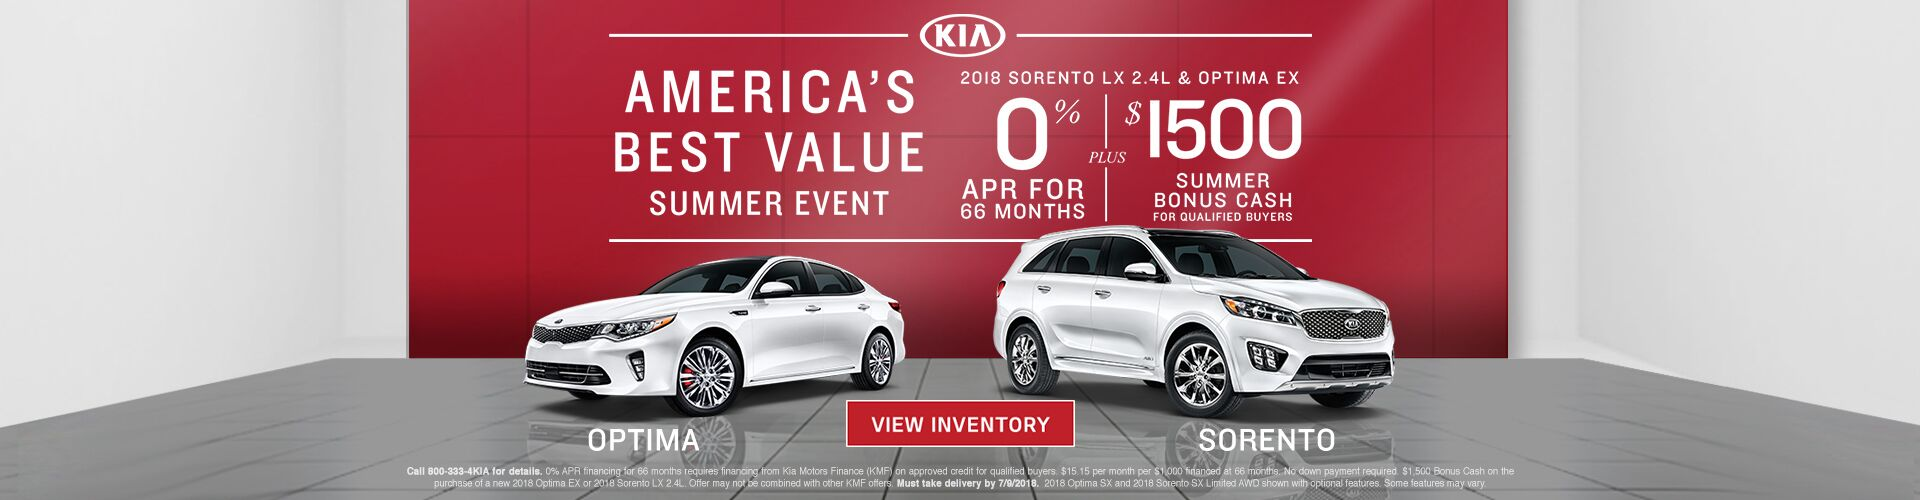 America's Best Value Summer Event at San Luis Bay Motors Kia